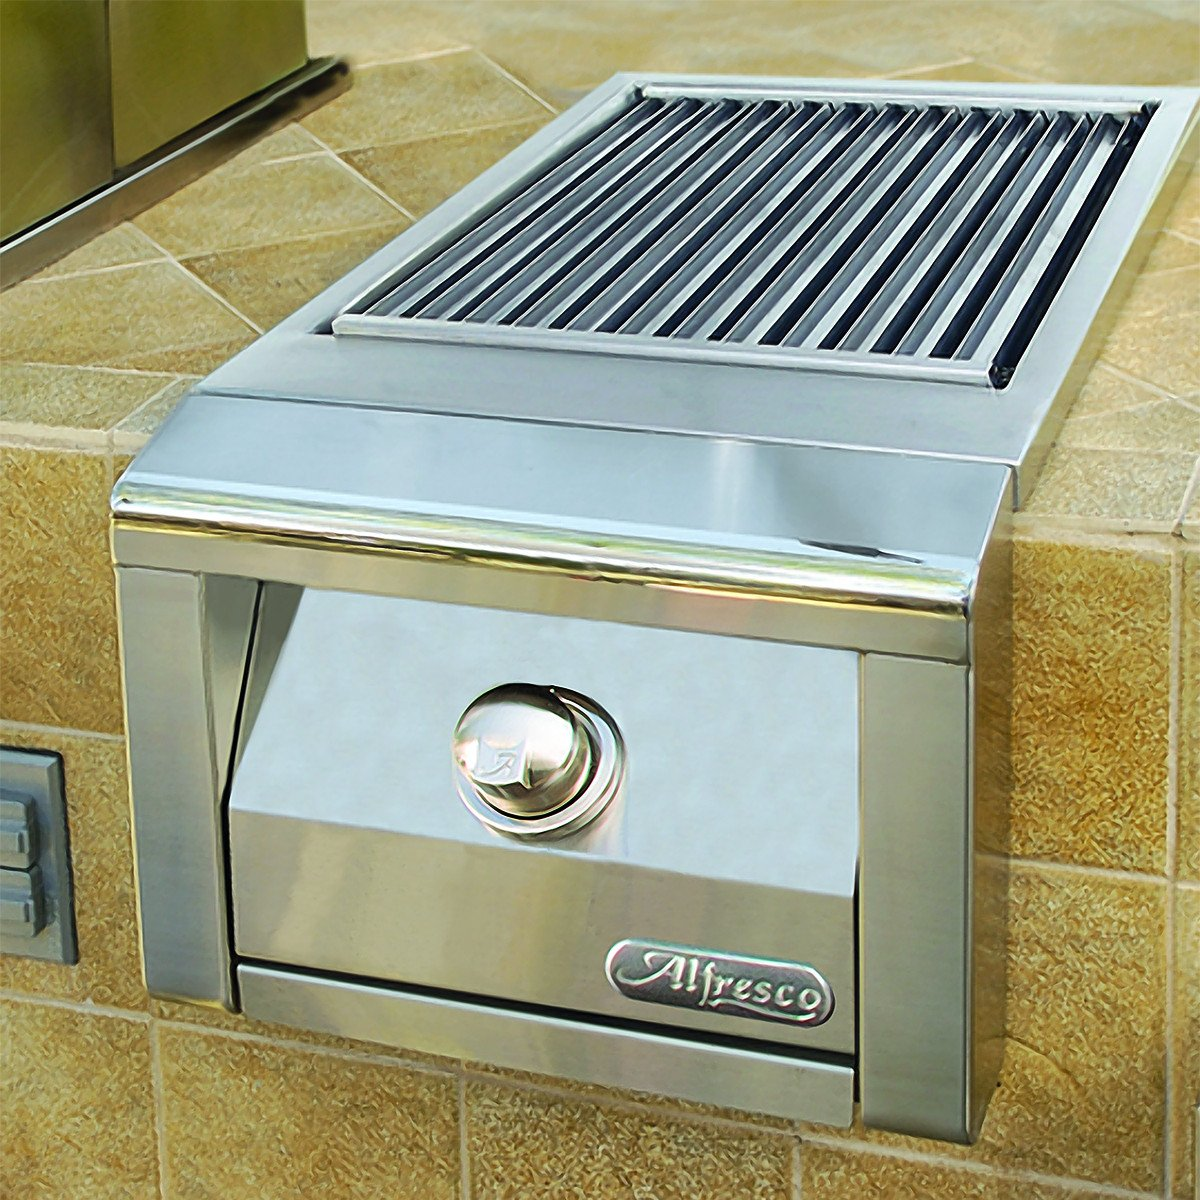 Alfresco Sear Zone Side Burner Built-In, Natural Gas